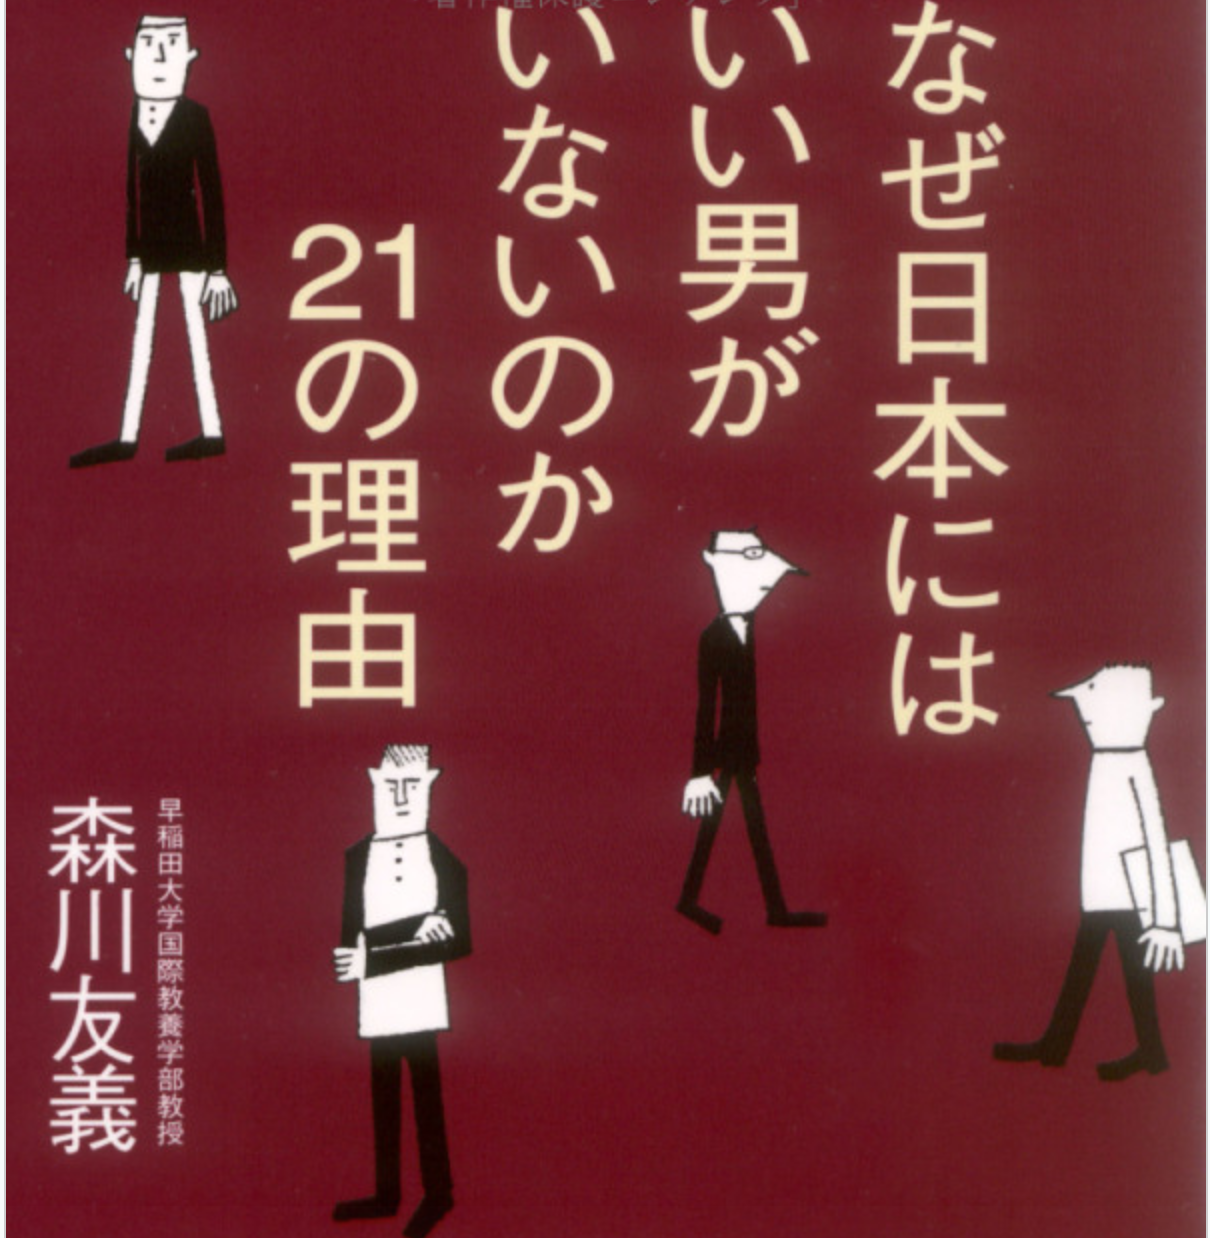 21 Reasons Why Japanese Men Suck (A Book Review) by Ms. Kaori Shoji